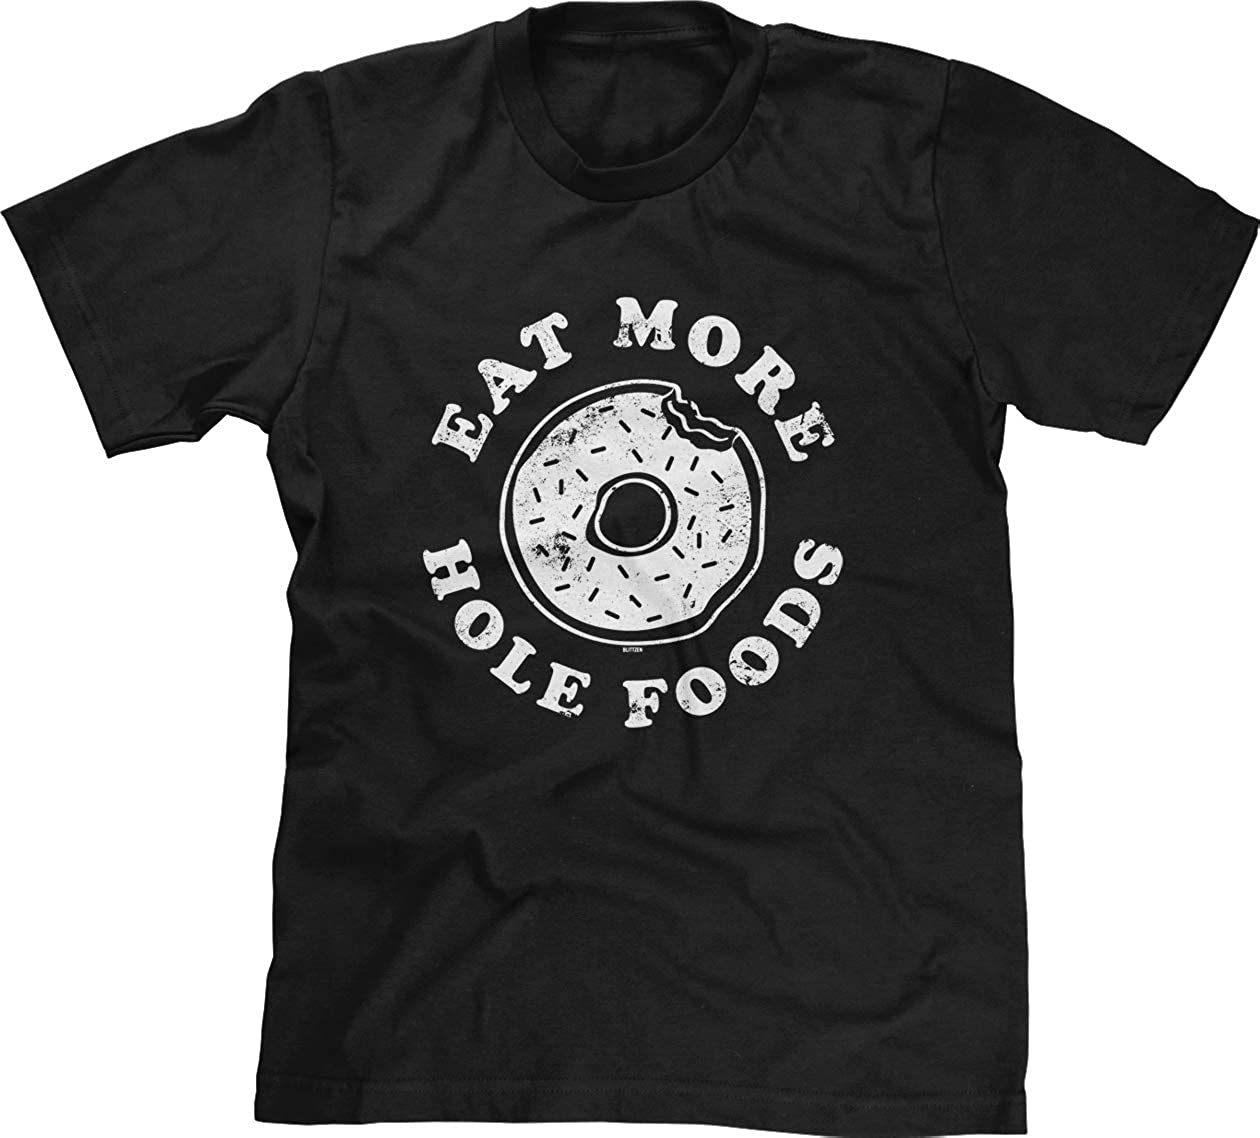 Blittzen Mens T-Shirt Eat More Hole Foods - Donut Pun Joke